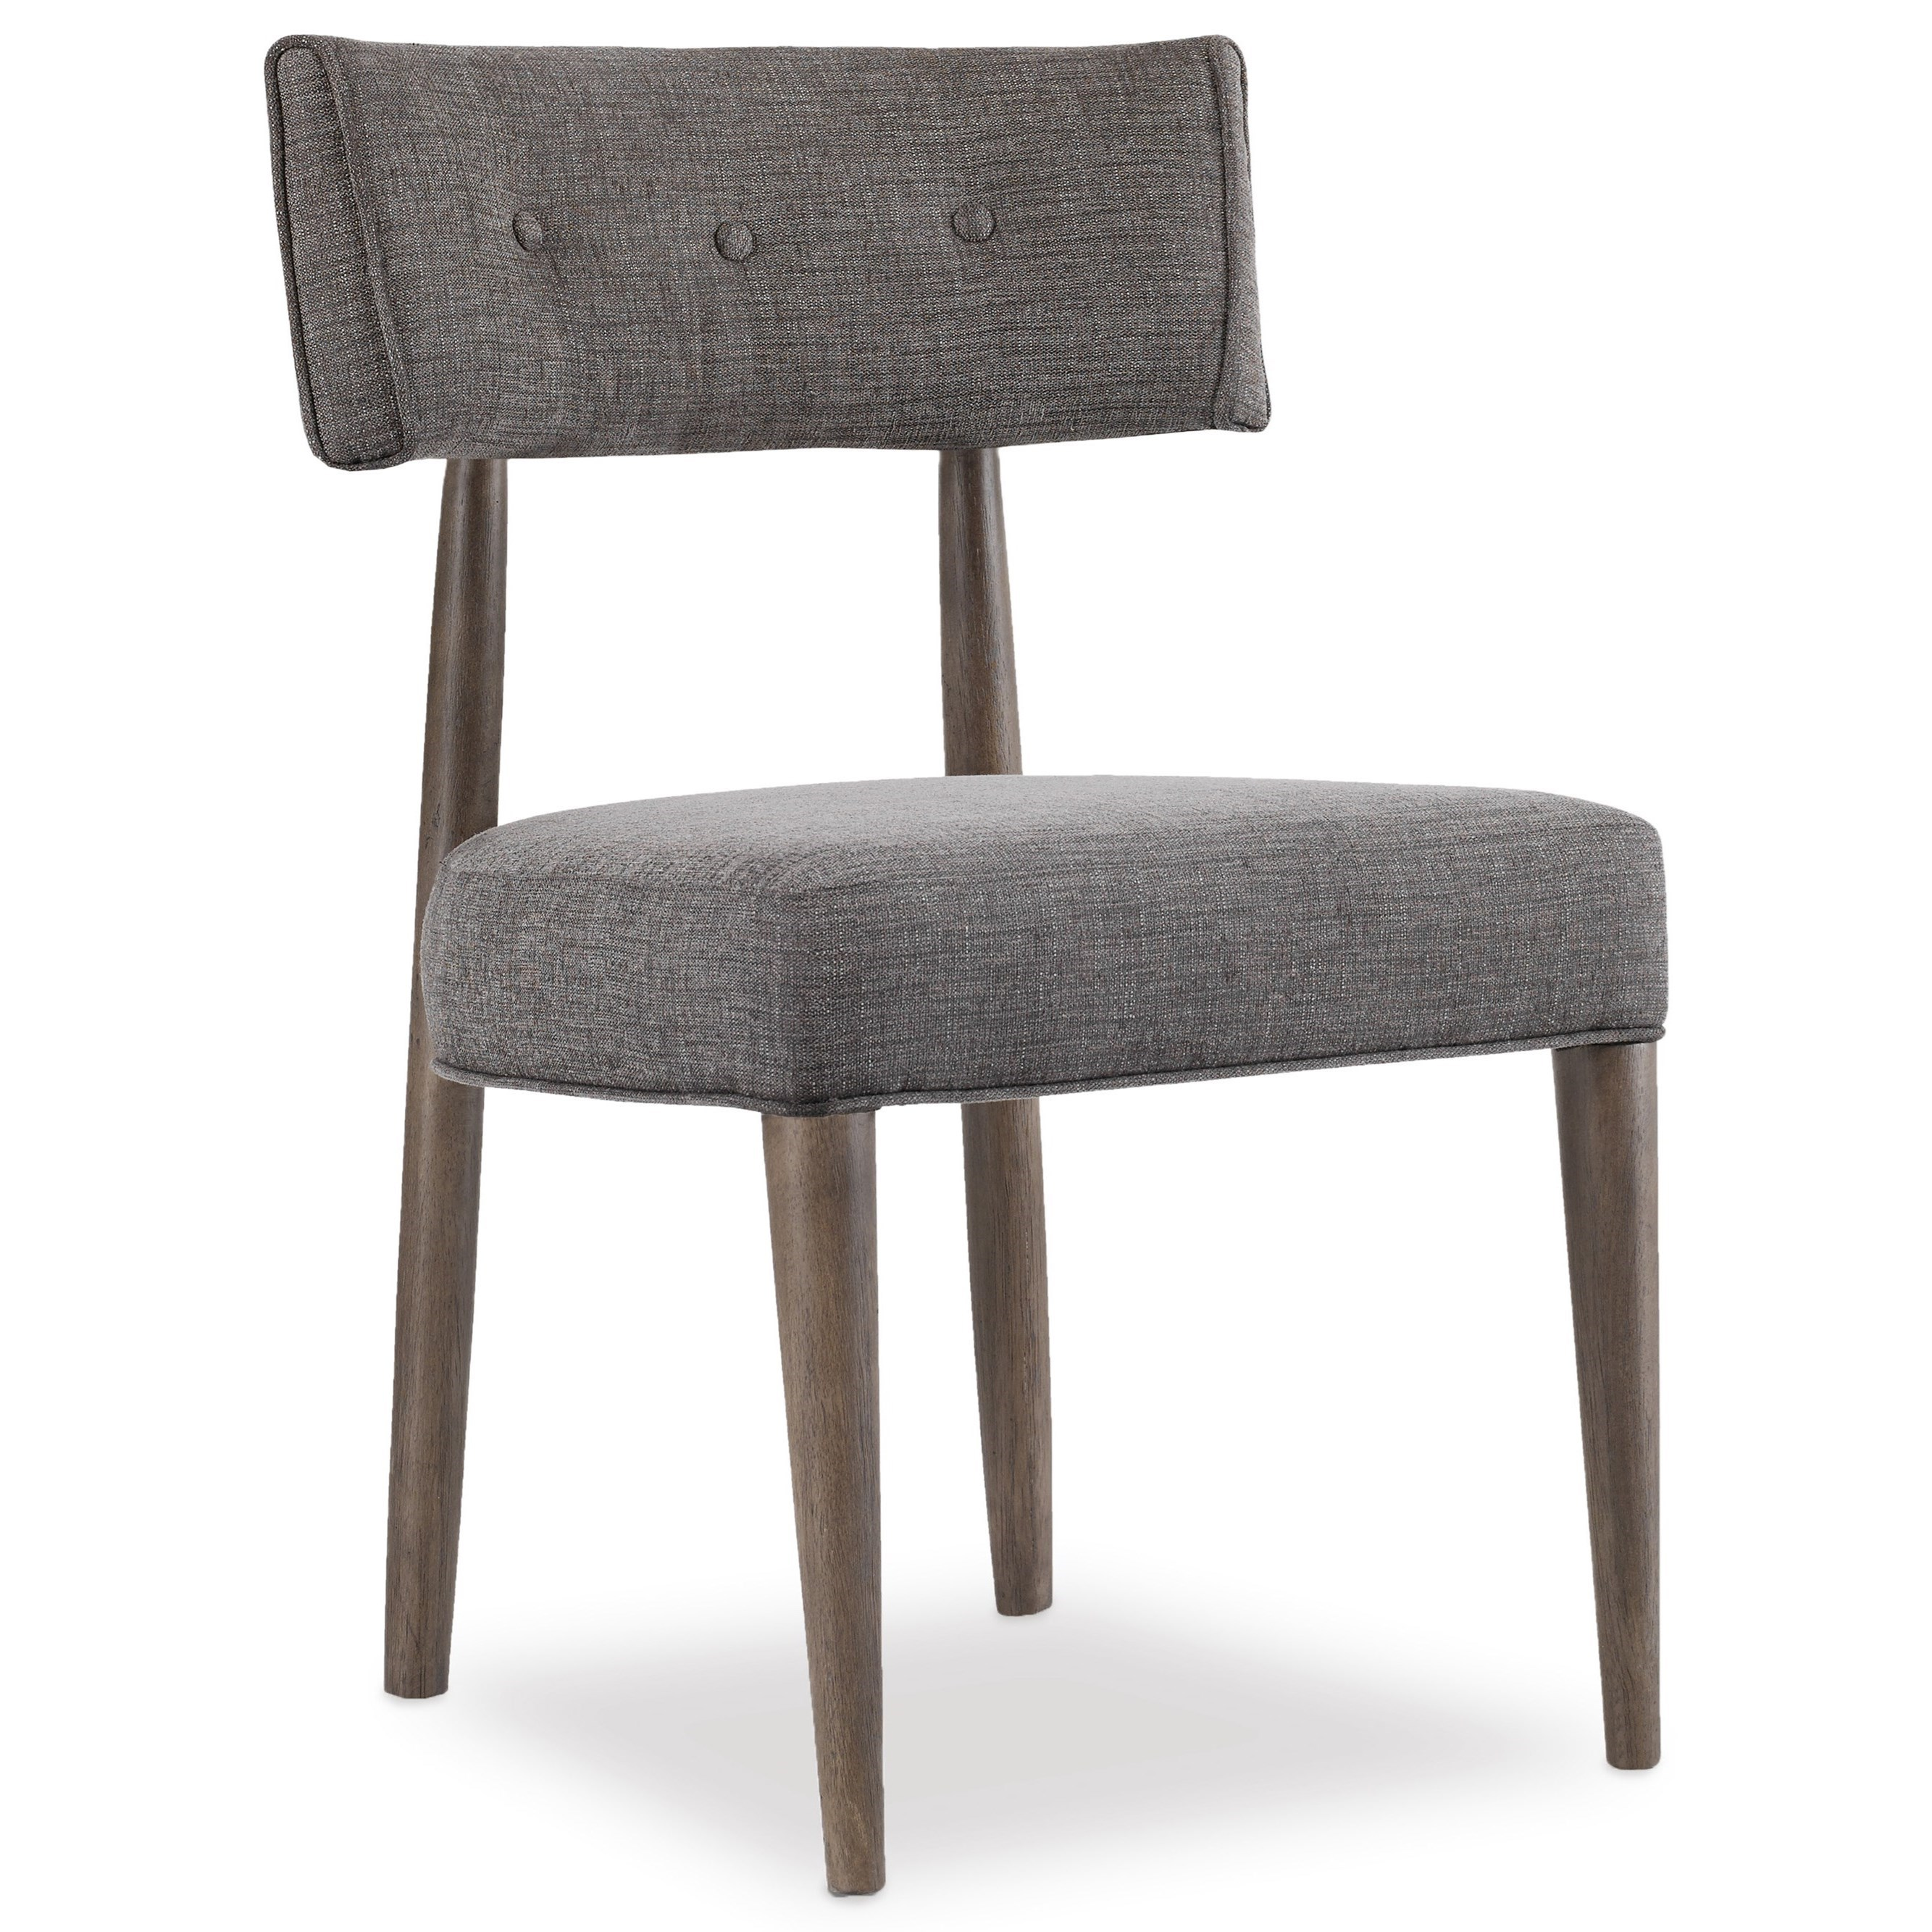 Curata Modern Upholstered Chair by Hooker Furniture at Stoney Creek Furniture